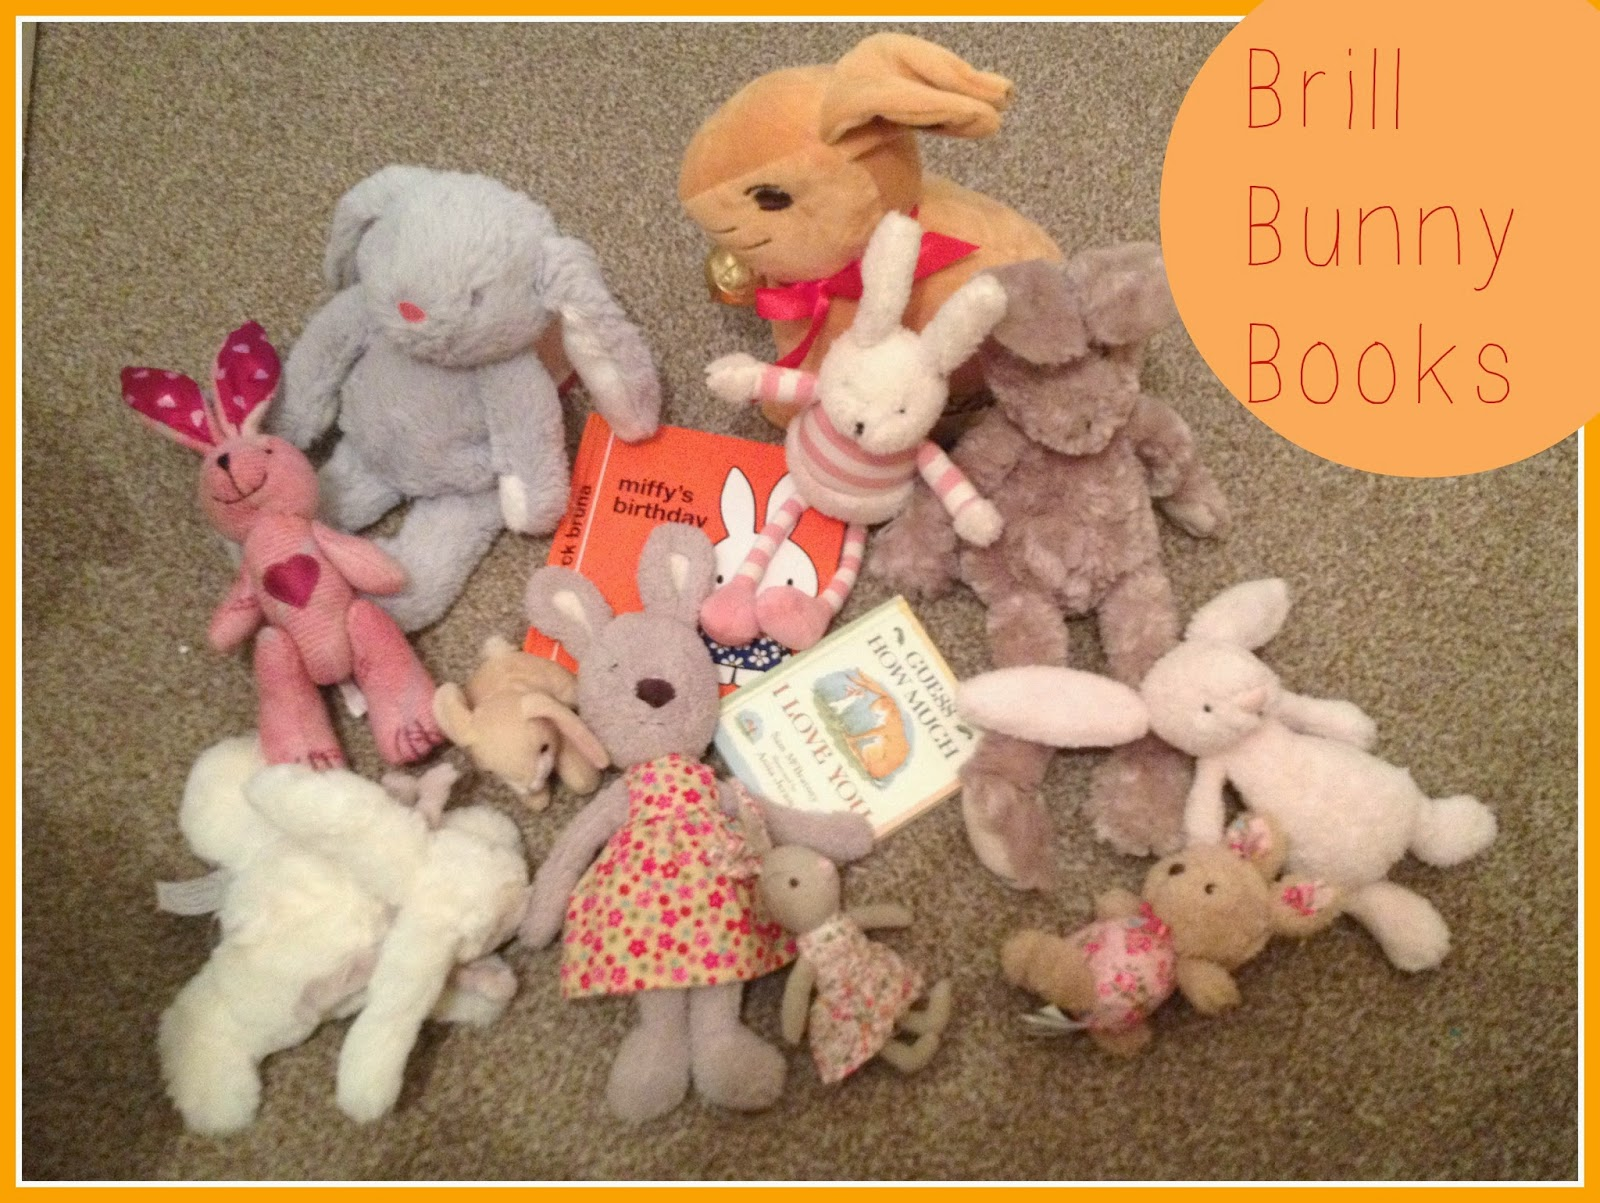 18 brilliant and beautiful bunny books for kids | bunnies | rabbits | books | book club | kids books | story time | sunday ight book club | mamasVIB | books about rabbits | books about bunnies| children's stories | baby books | classic library | miff | peter rabbit | thats n to my rabbit | I am a bunny | runaway bunny | classic tales | bunny | baby rabbits | kids books | toddlers | babies |